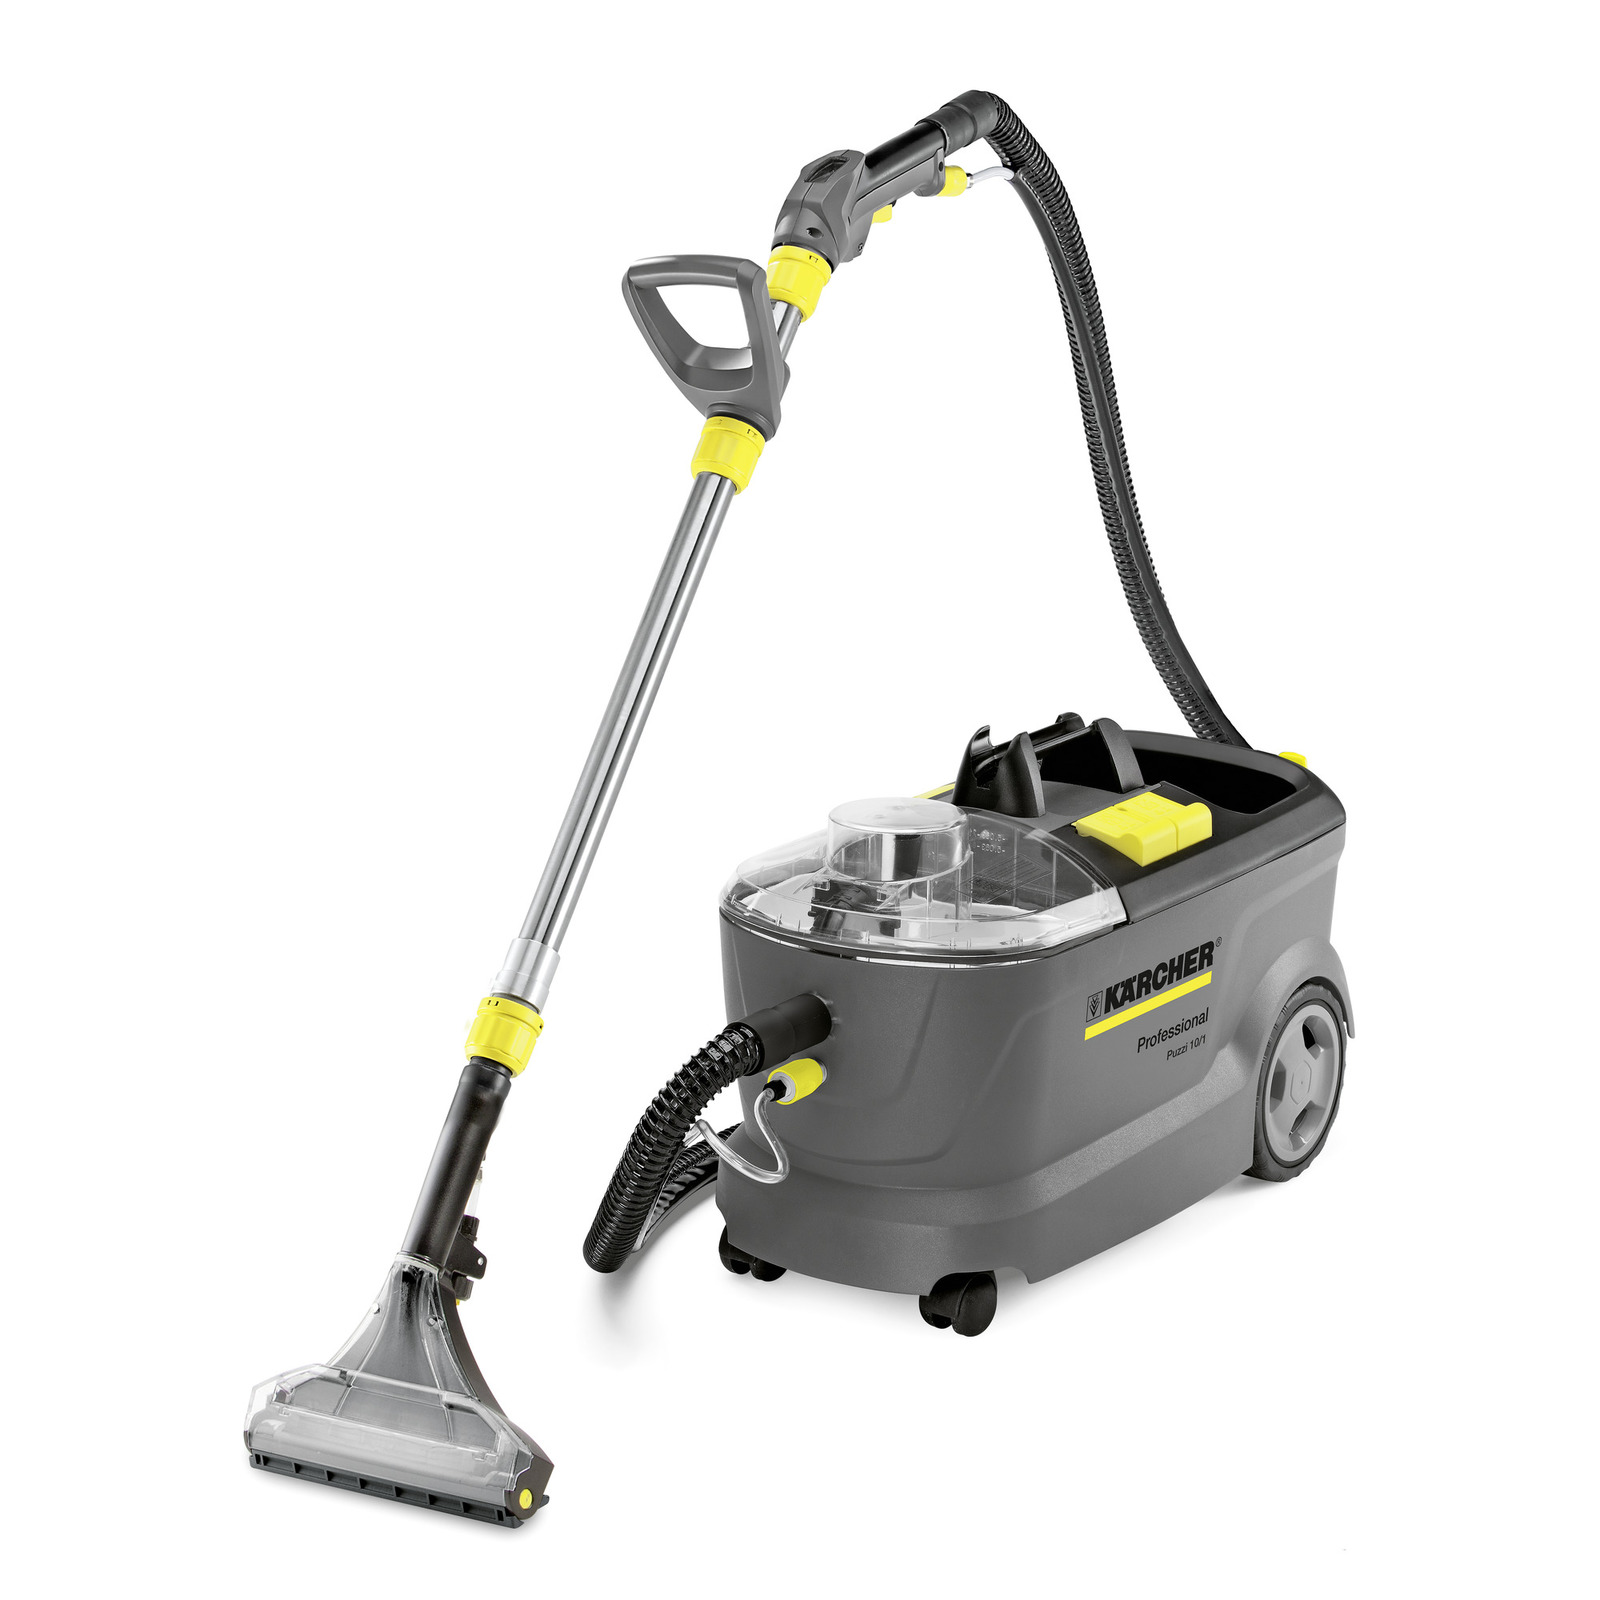 Spray Extraction Cleaner Puzzi 10 1 Karcher Uk